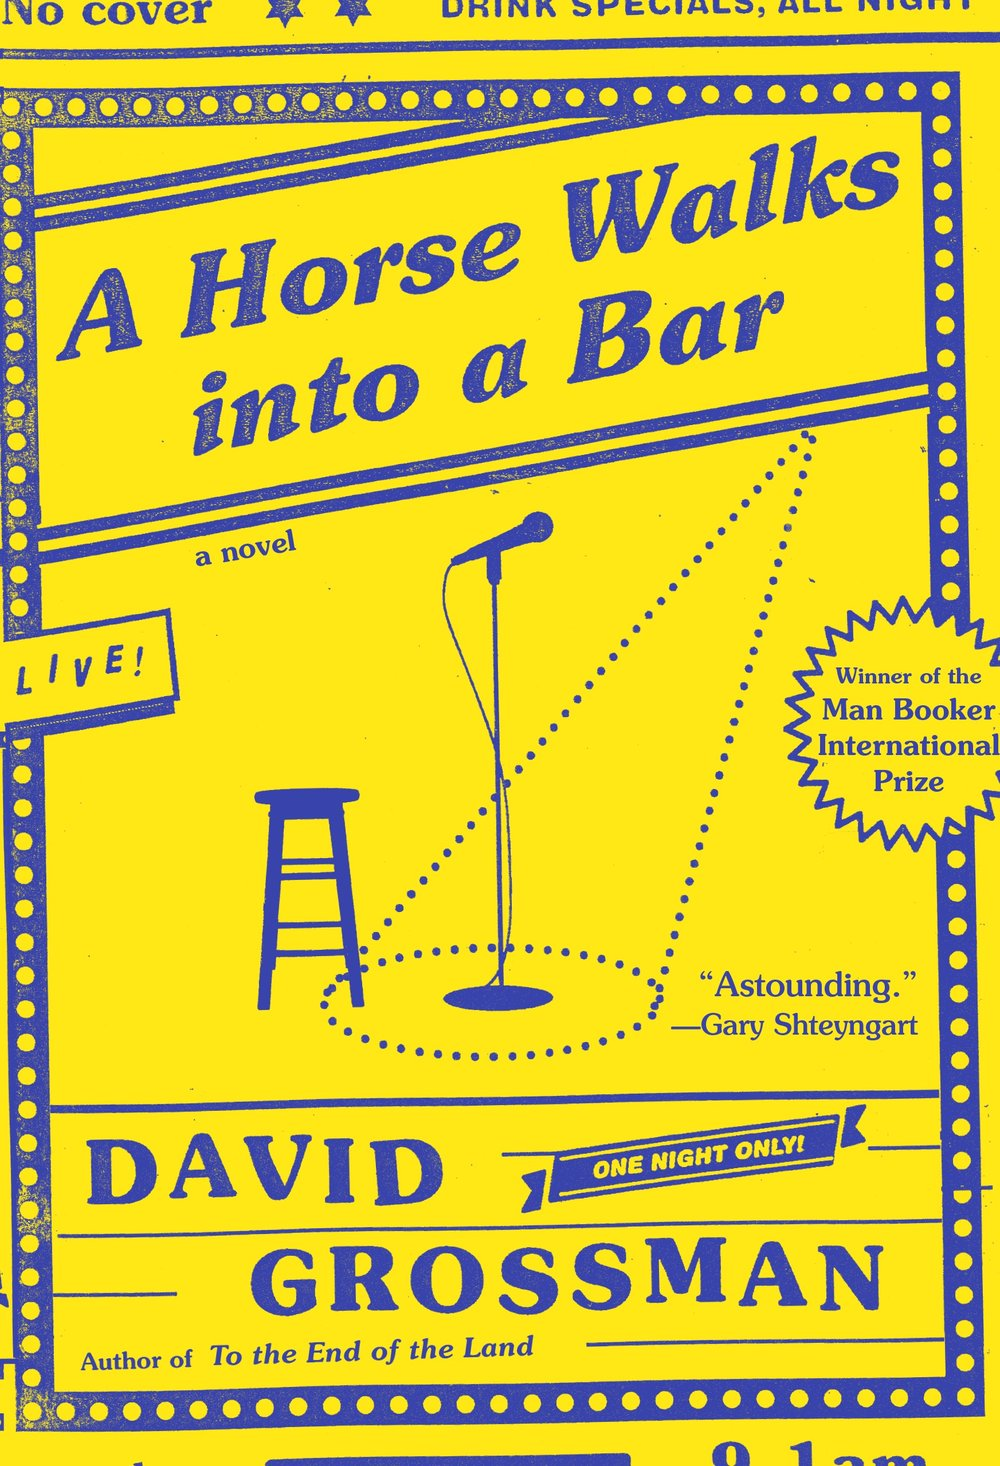 A Horse Walks into a Bar  by David Grossman  Winner of the Man Booker International Prize